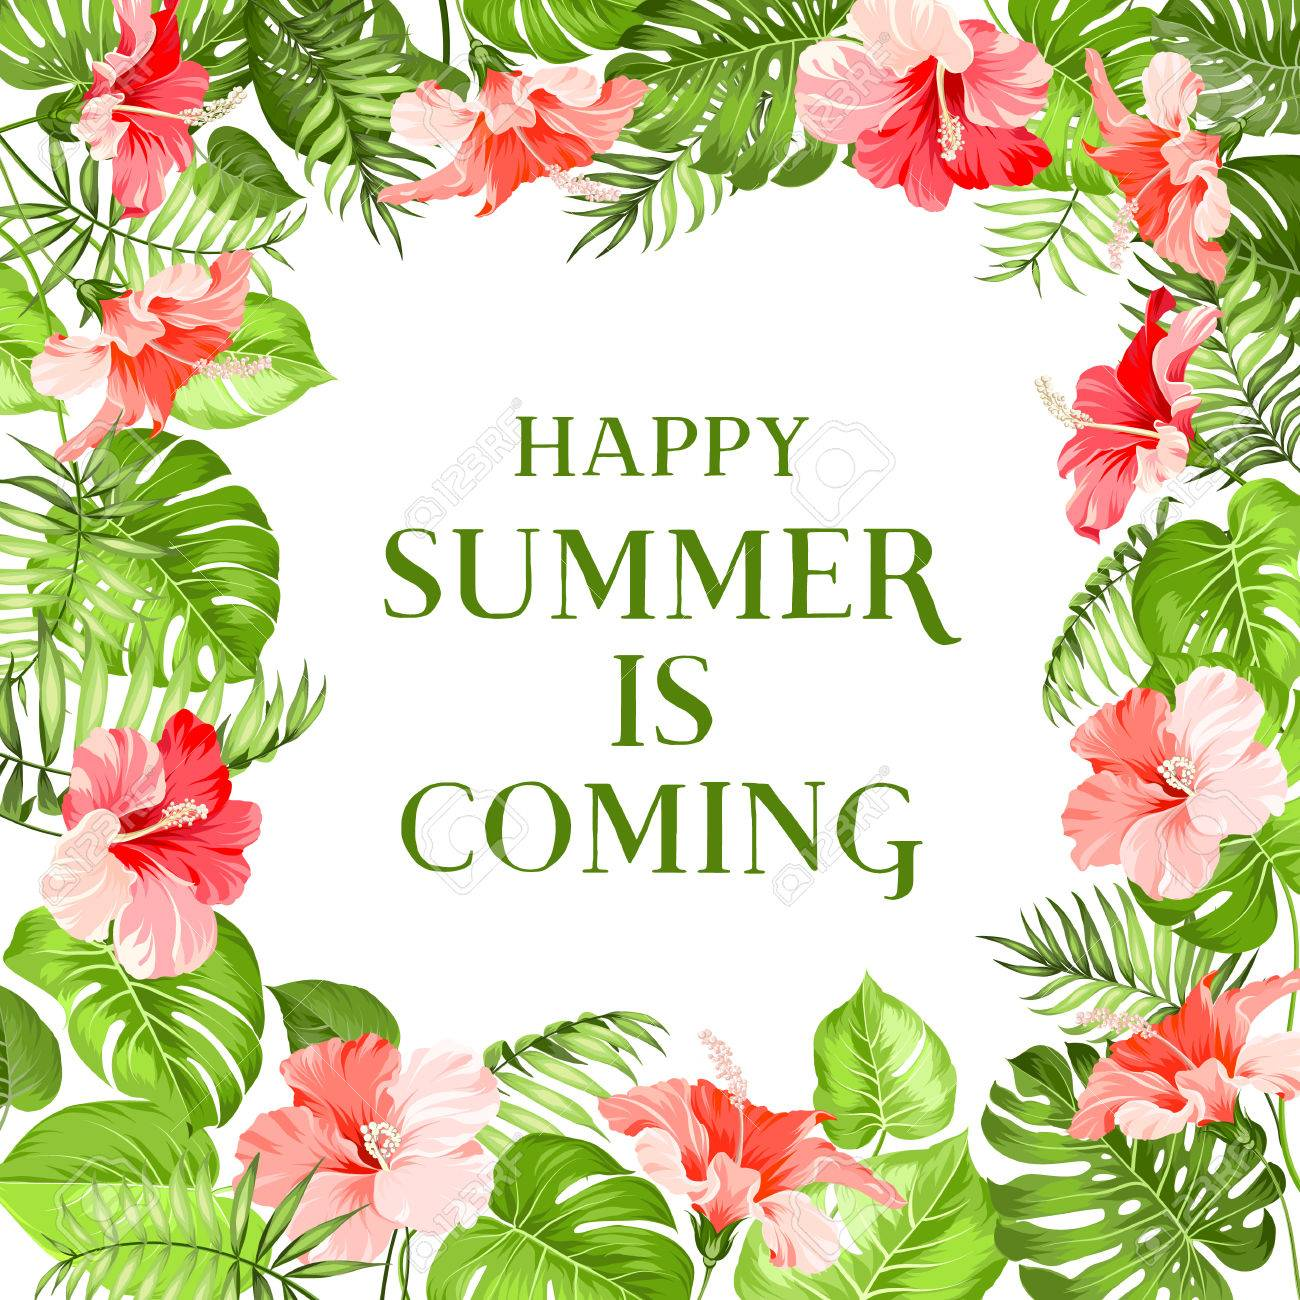 Banco De Imagens   Beautiful Text. Happy Summer Is Coming. Tropical  Flowers. Tropical Flower Garland. Blossom Flowers For Post Card. Vector  Illustration.